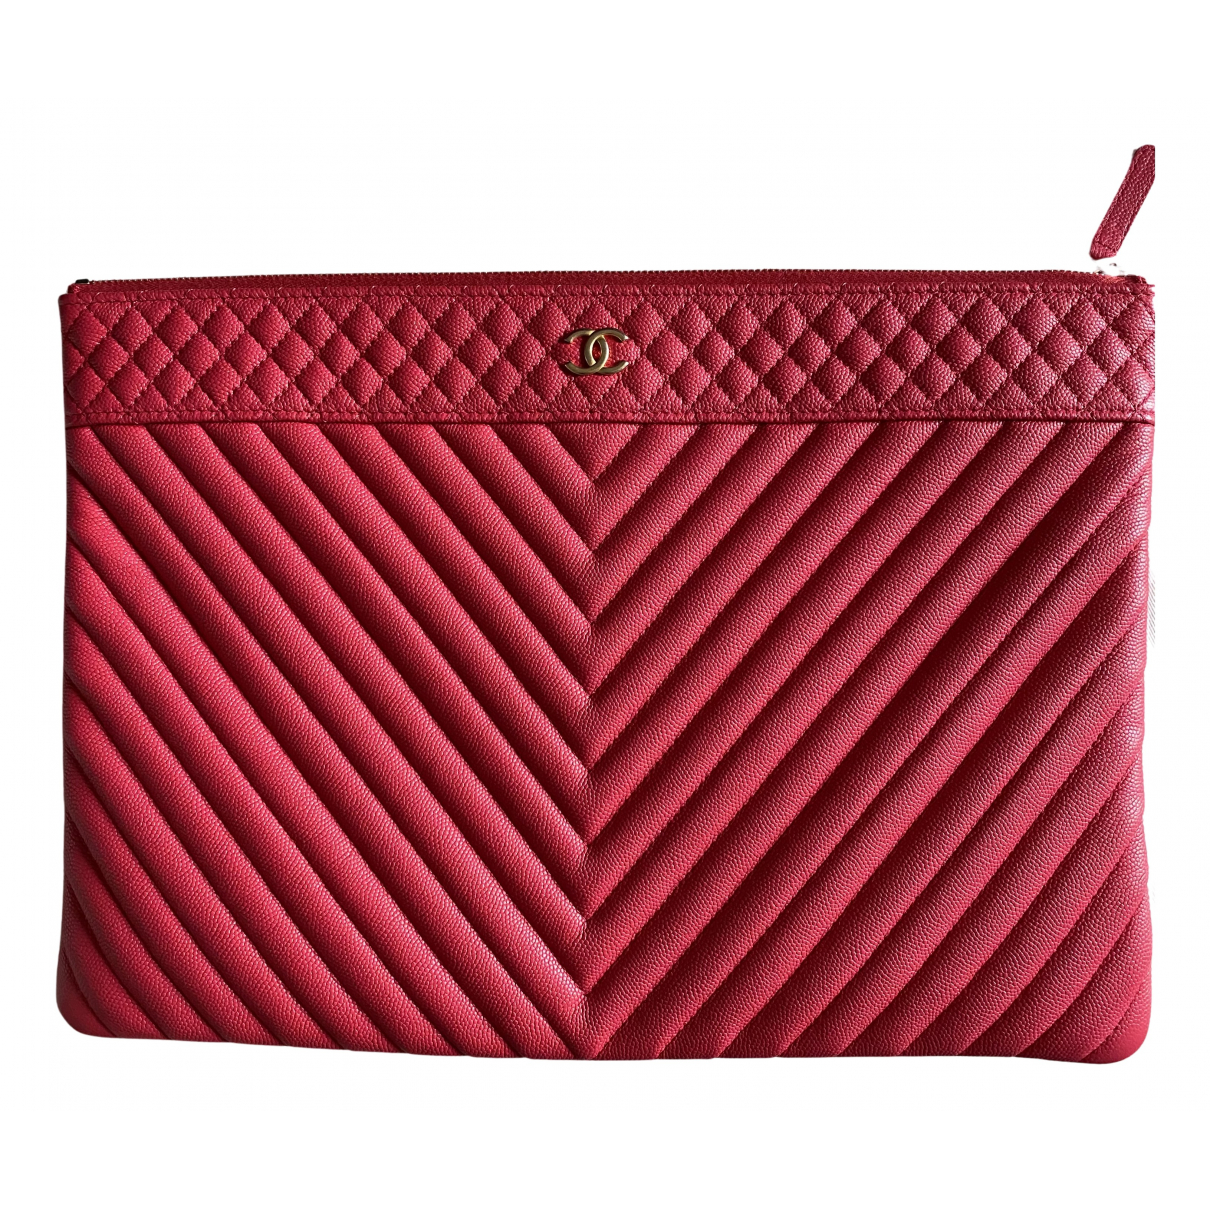 Chanel Timeless/Classique Pink Leather Clutch bag for Women N